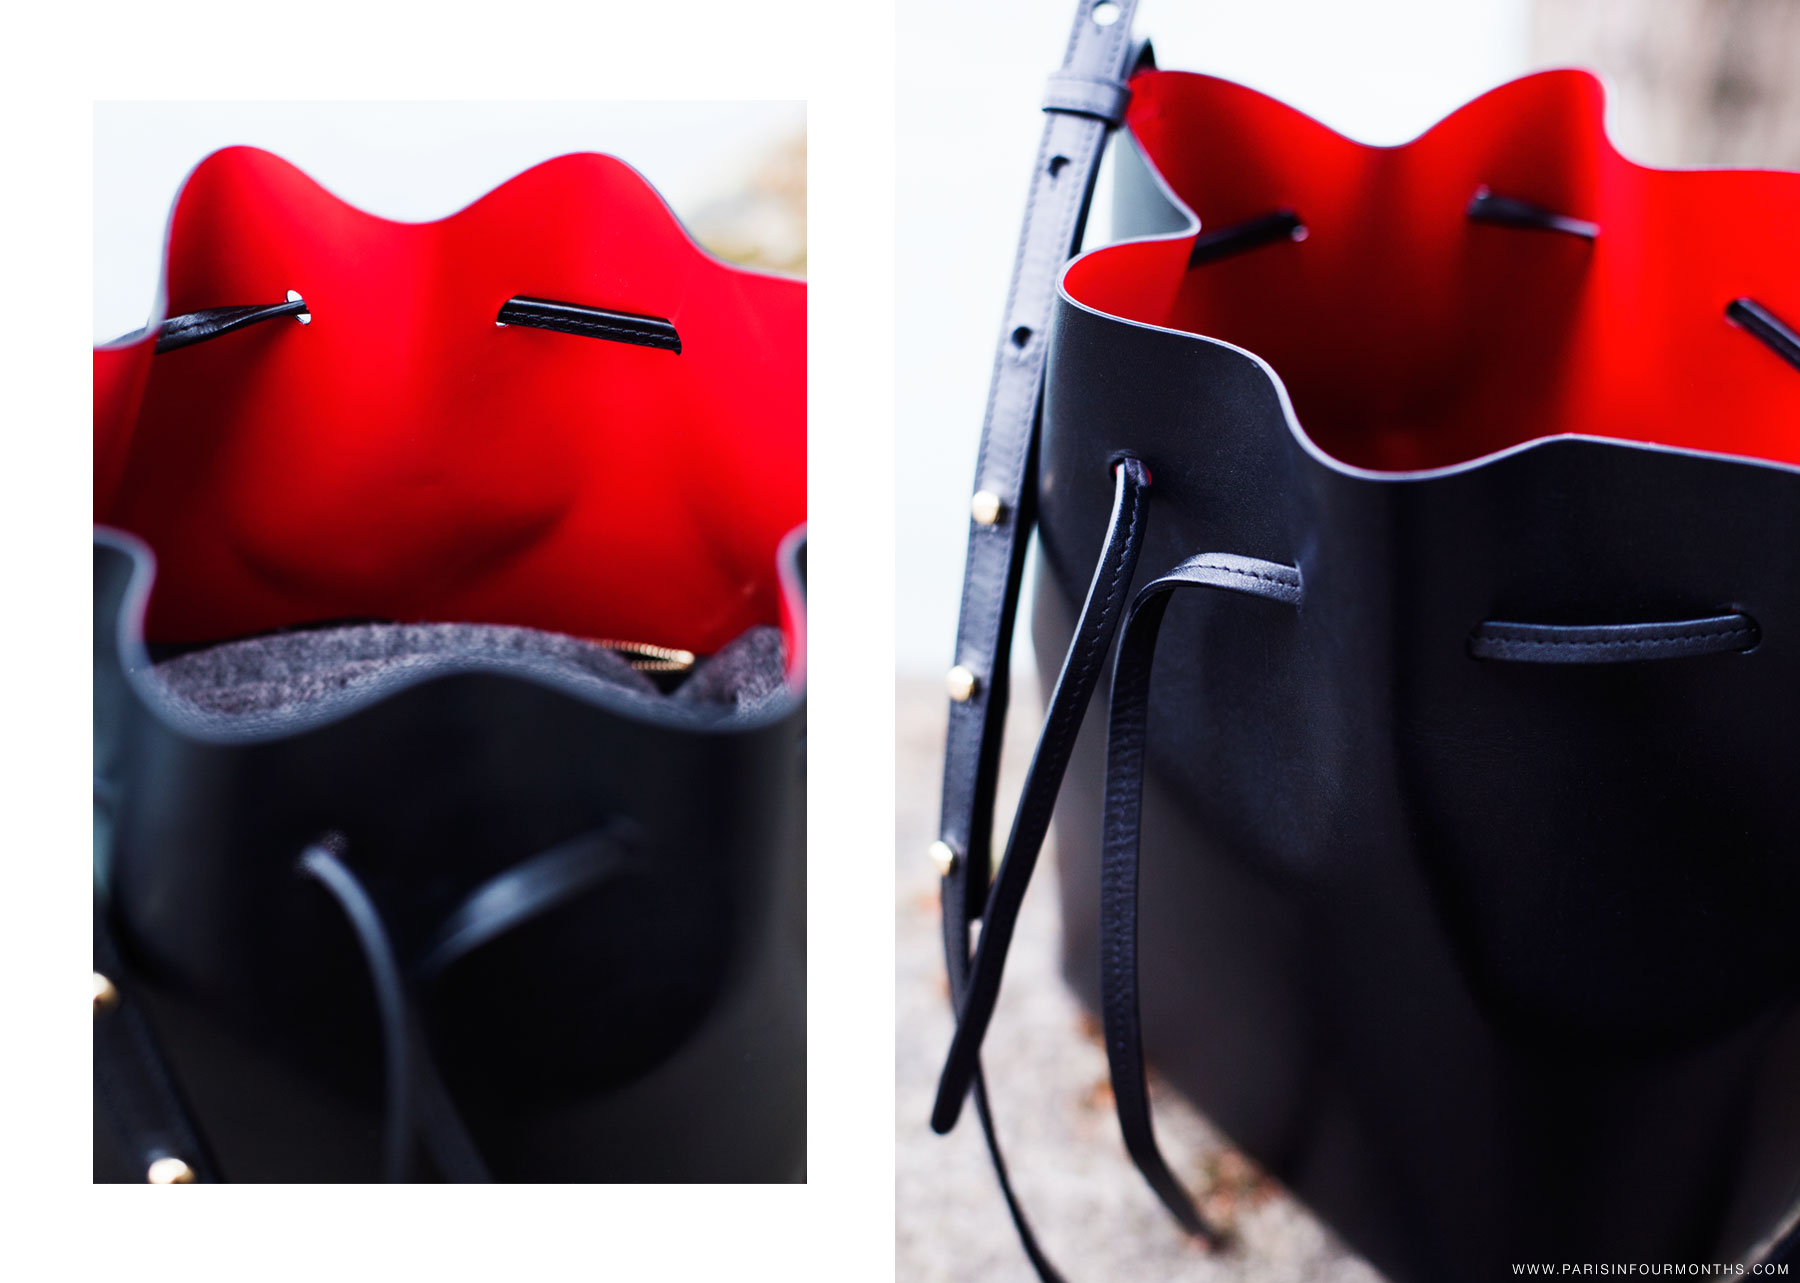 Mansur Gavriel bucket bag by Carin Olsson (Paris in Four Months)